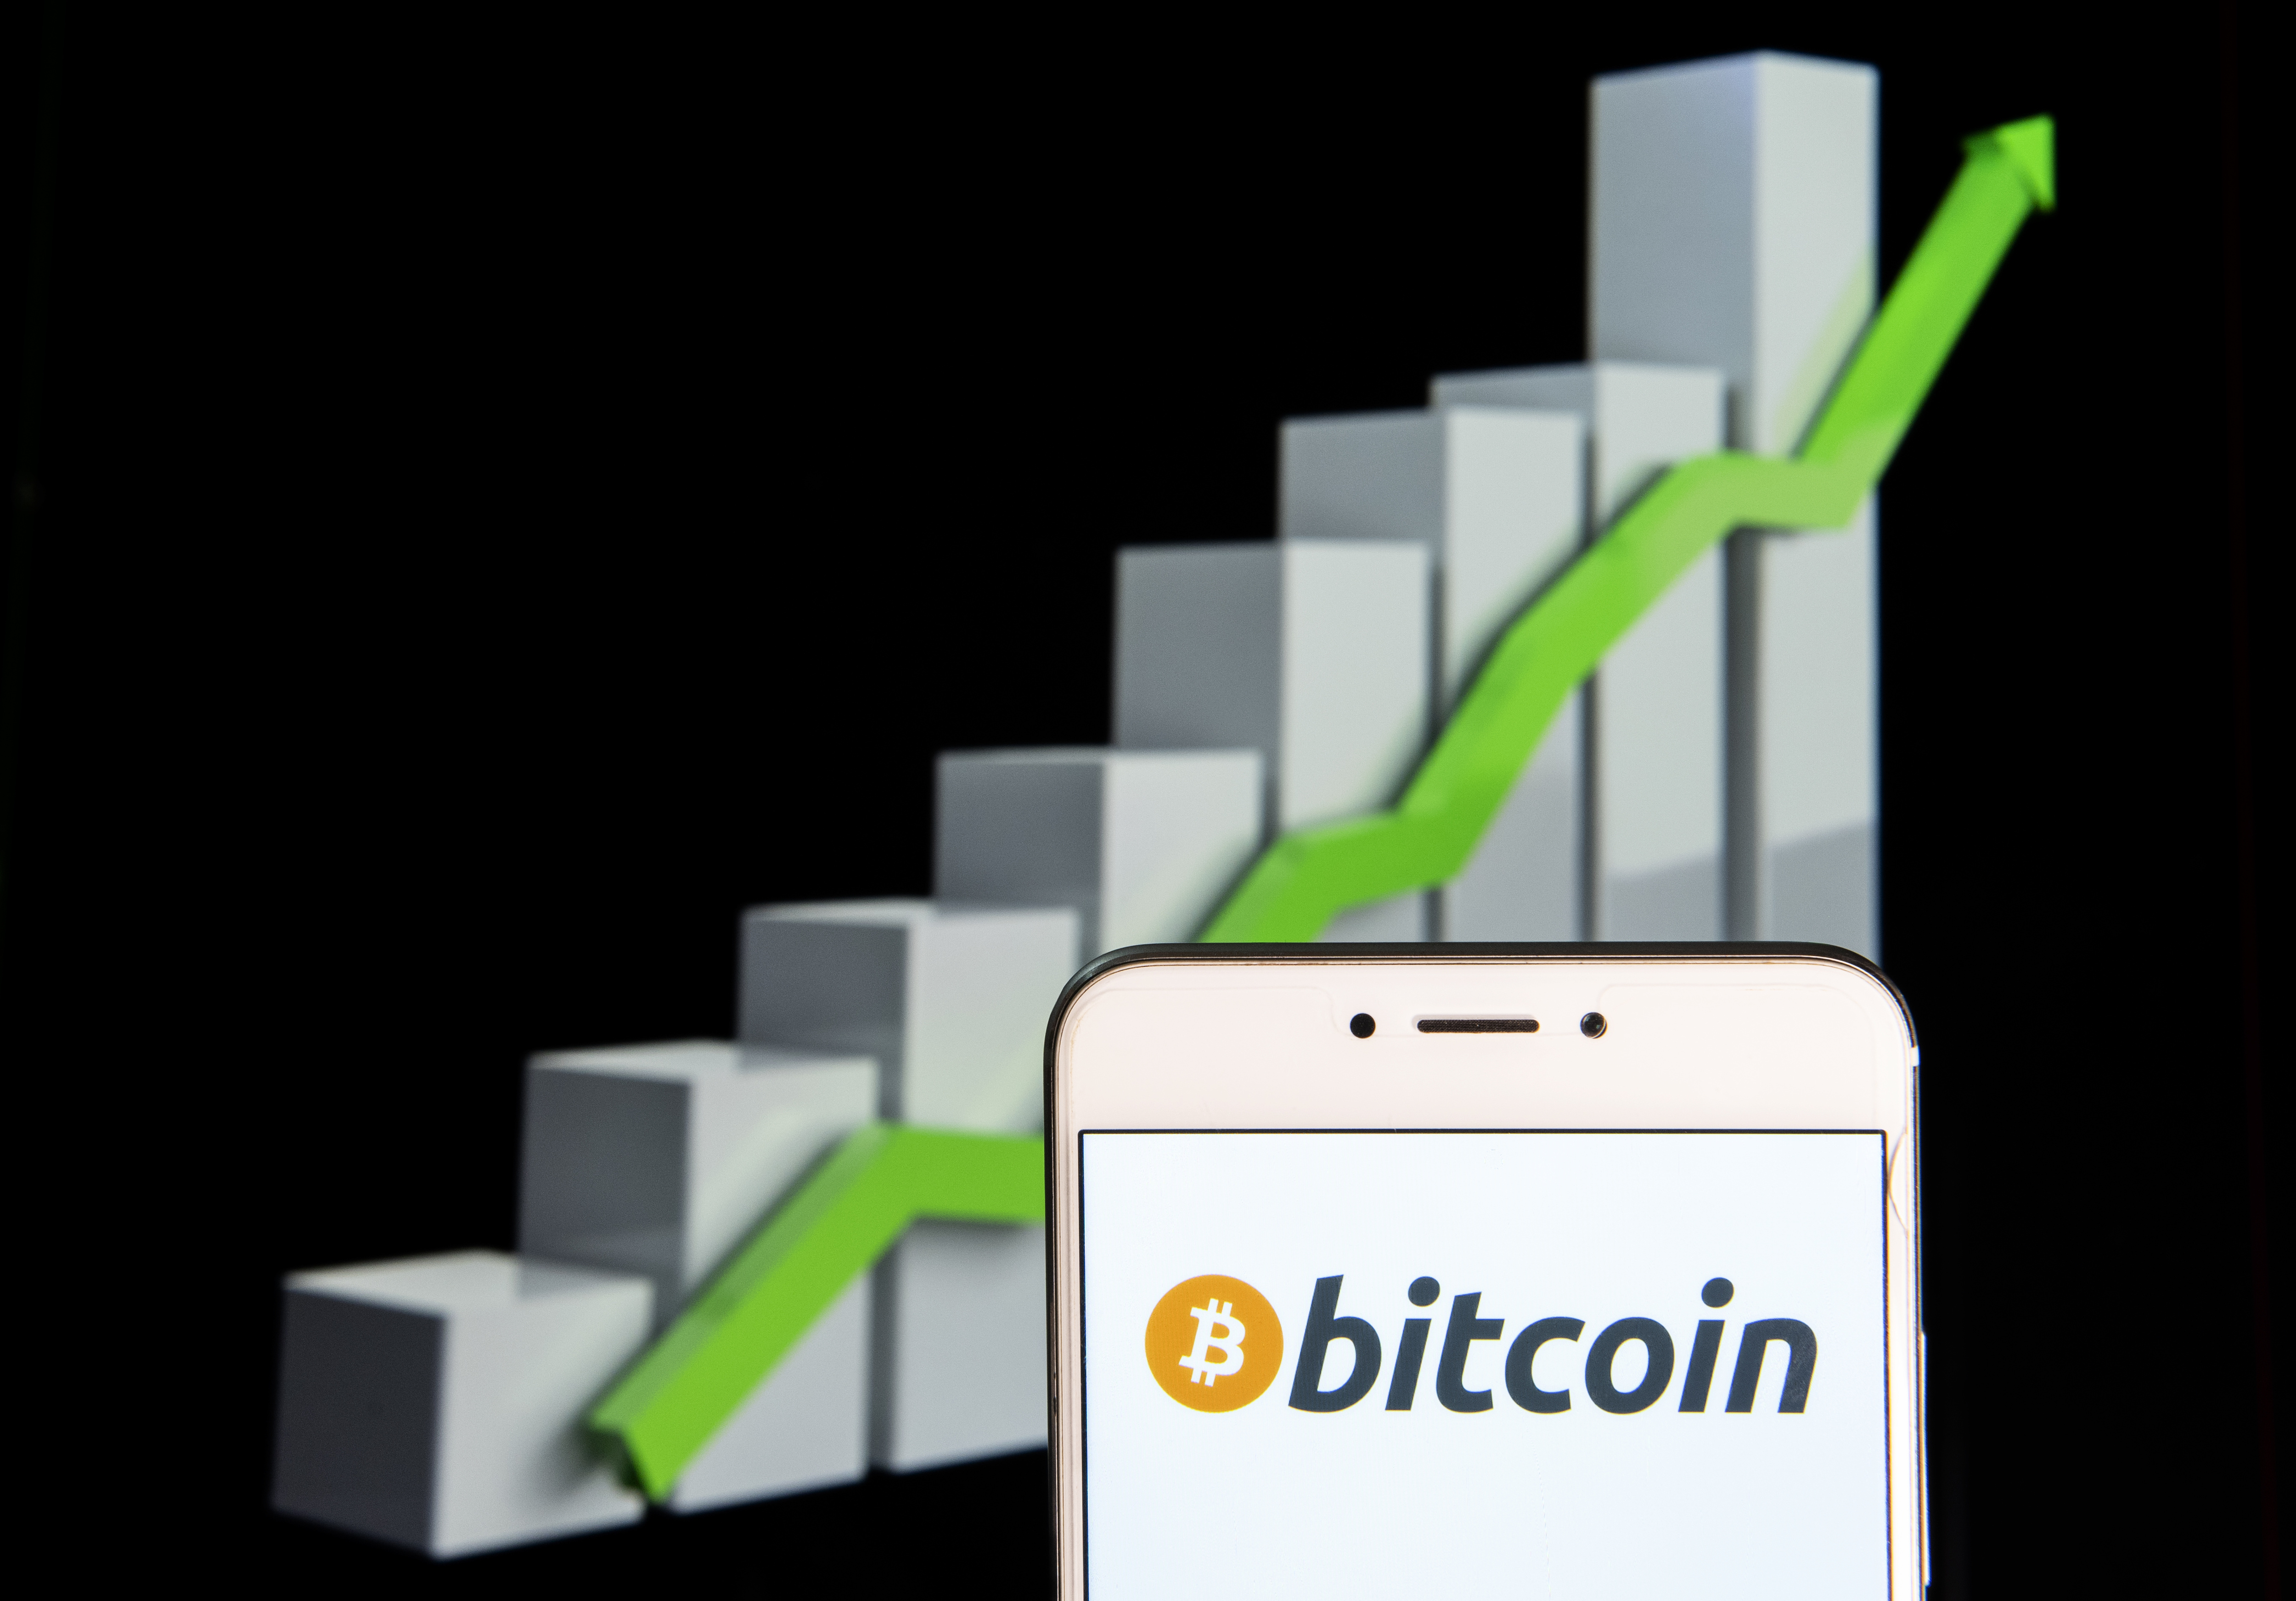 Cryptocurrency electronic cash Bitcoin logo is seen on a phone